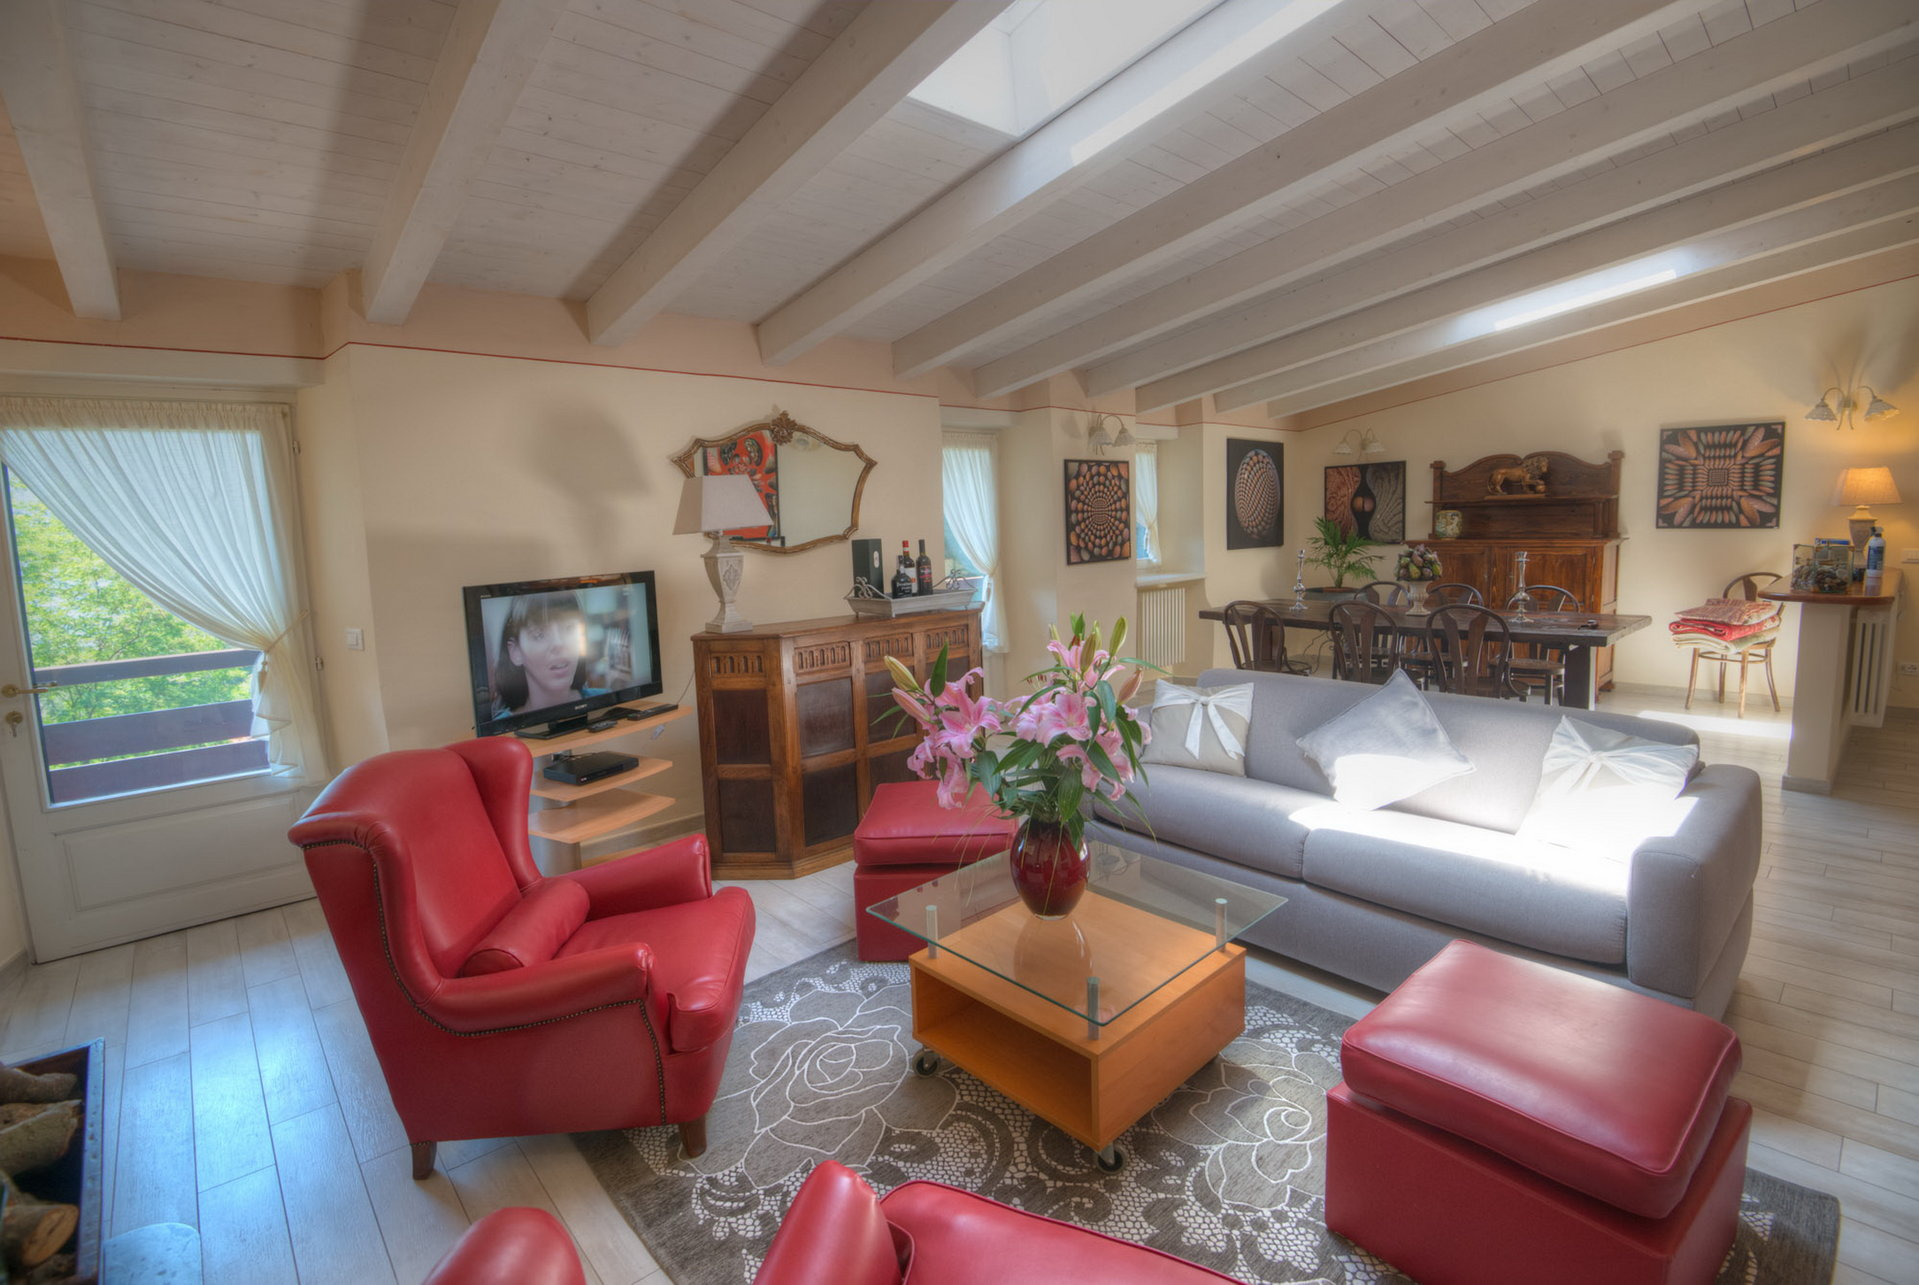 Historic villa with guesthouse and land for sale in Verbania - sitting room